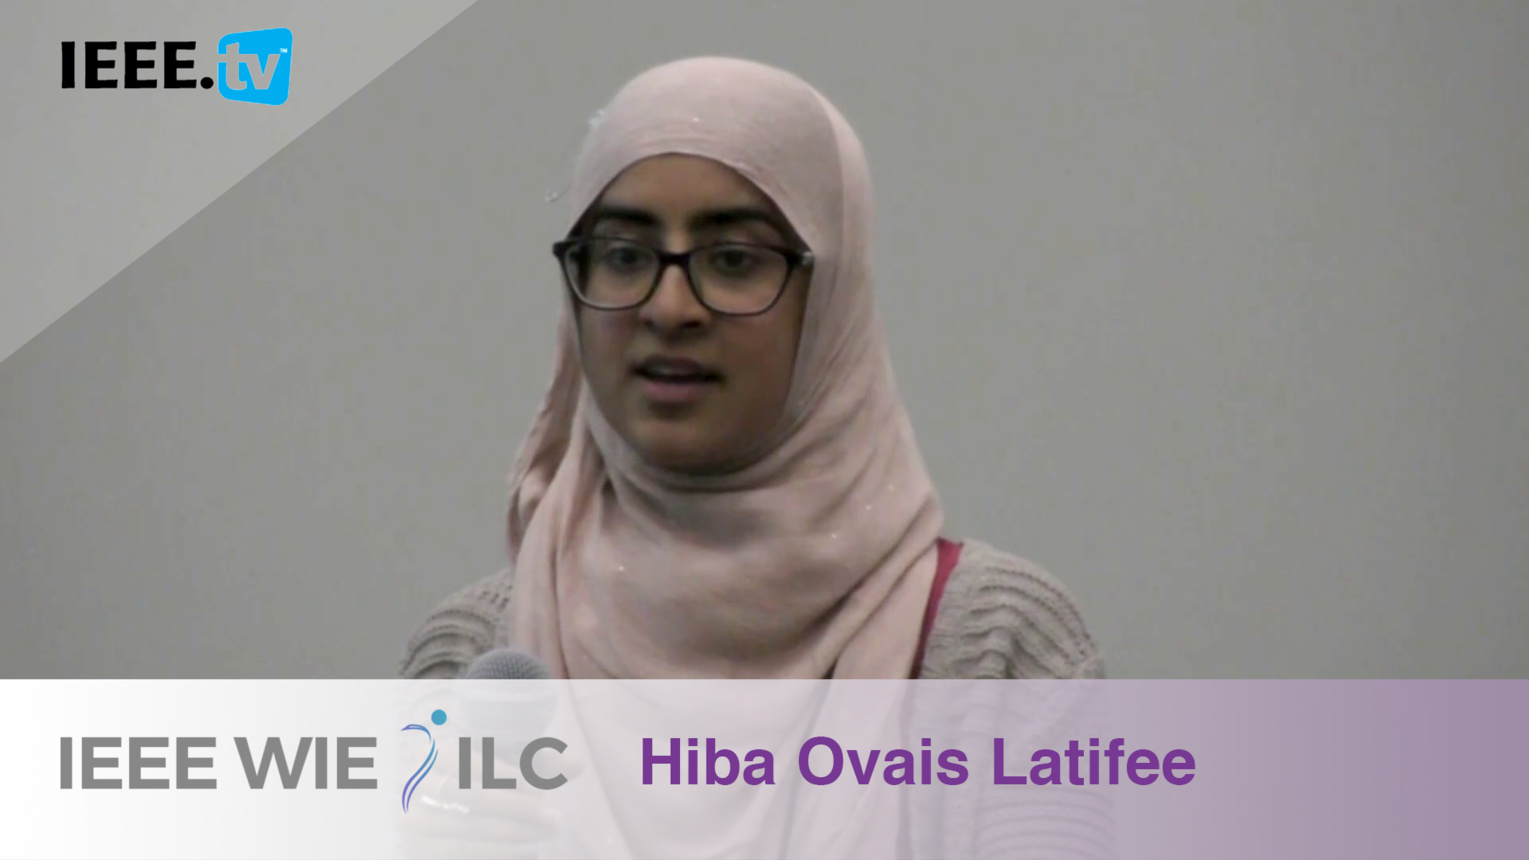 Hiba Latifee: Inspiring Student WIE Member of the Year Winner - IEEE WIE ILC Awards 2017